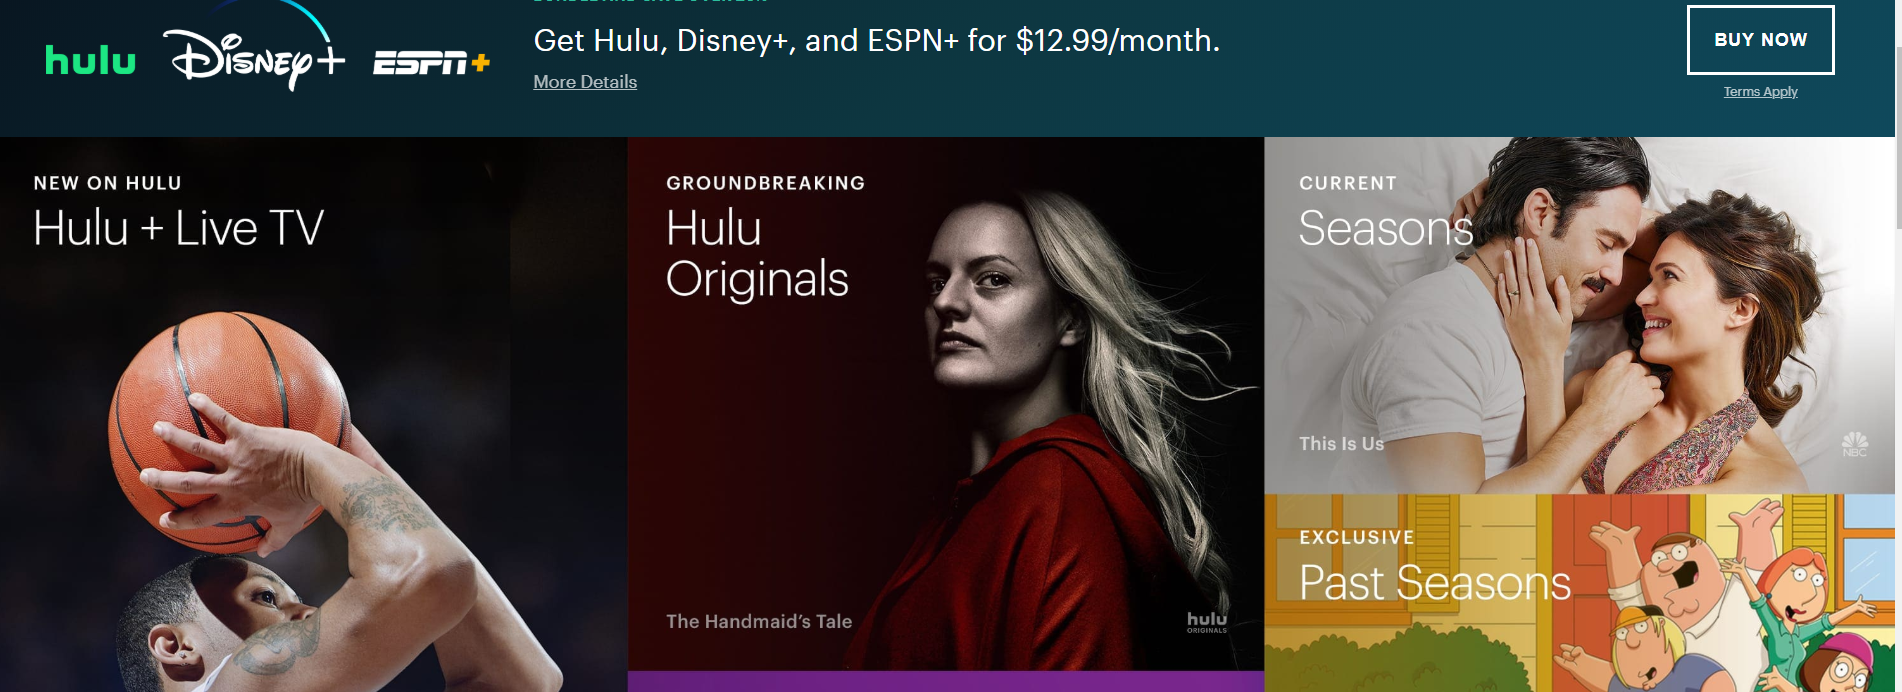 Hulu Ruby on rails